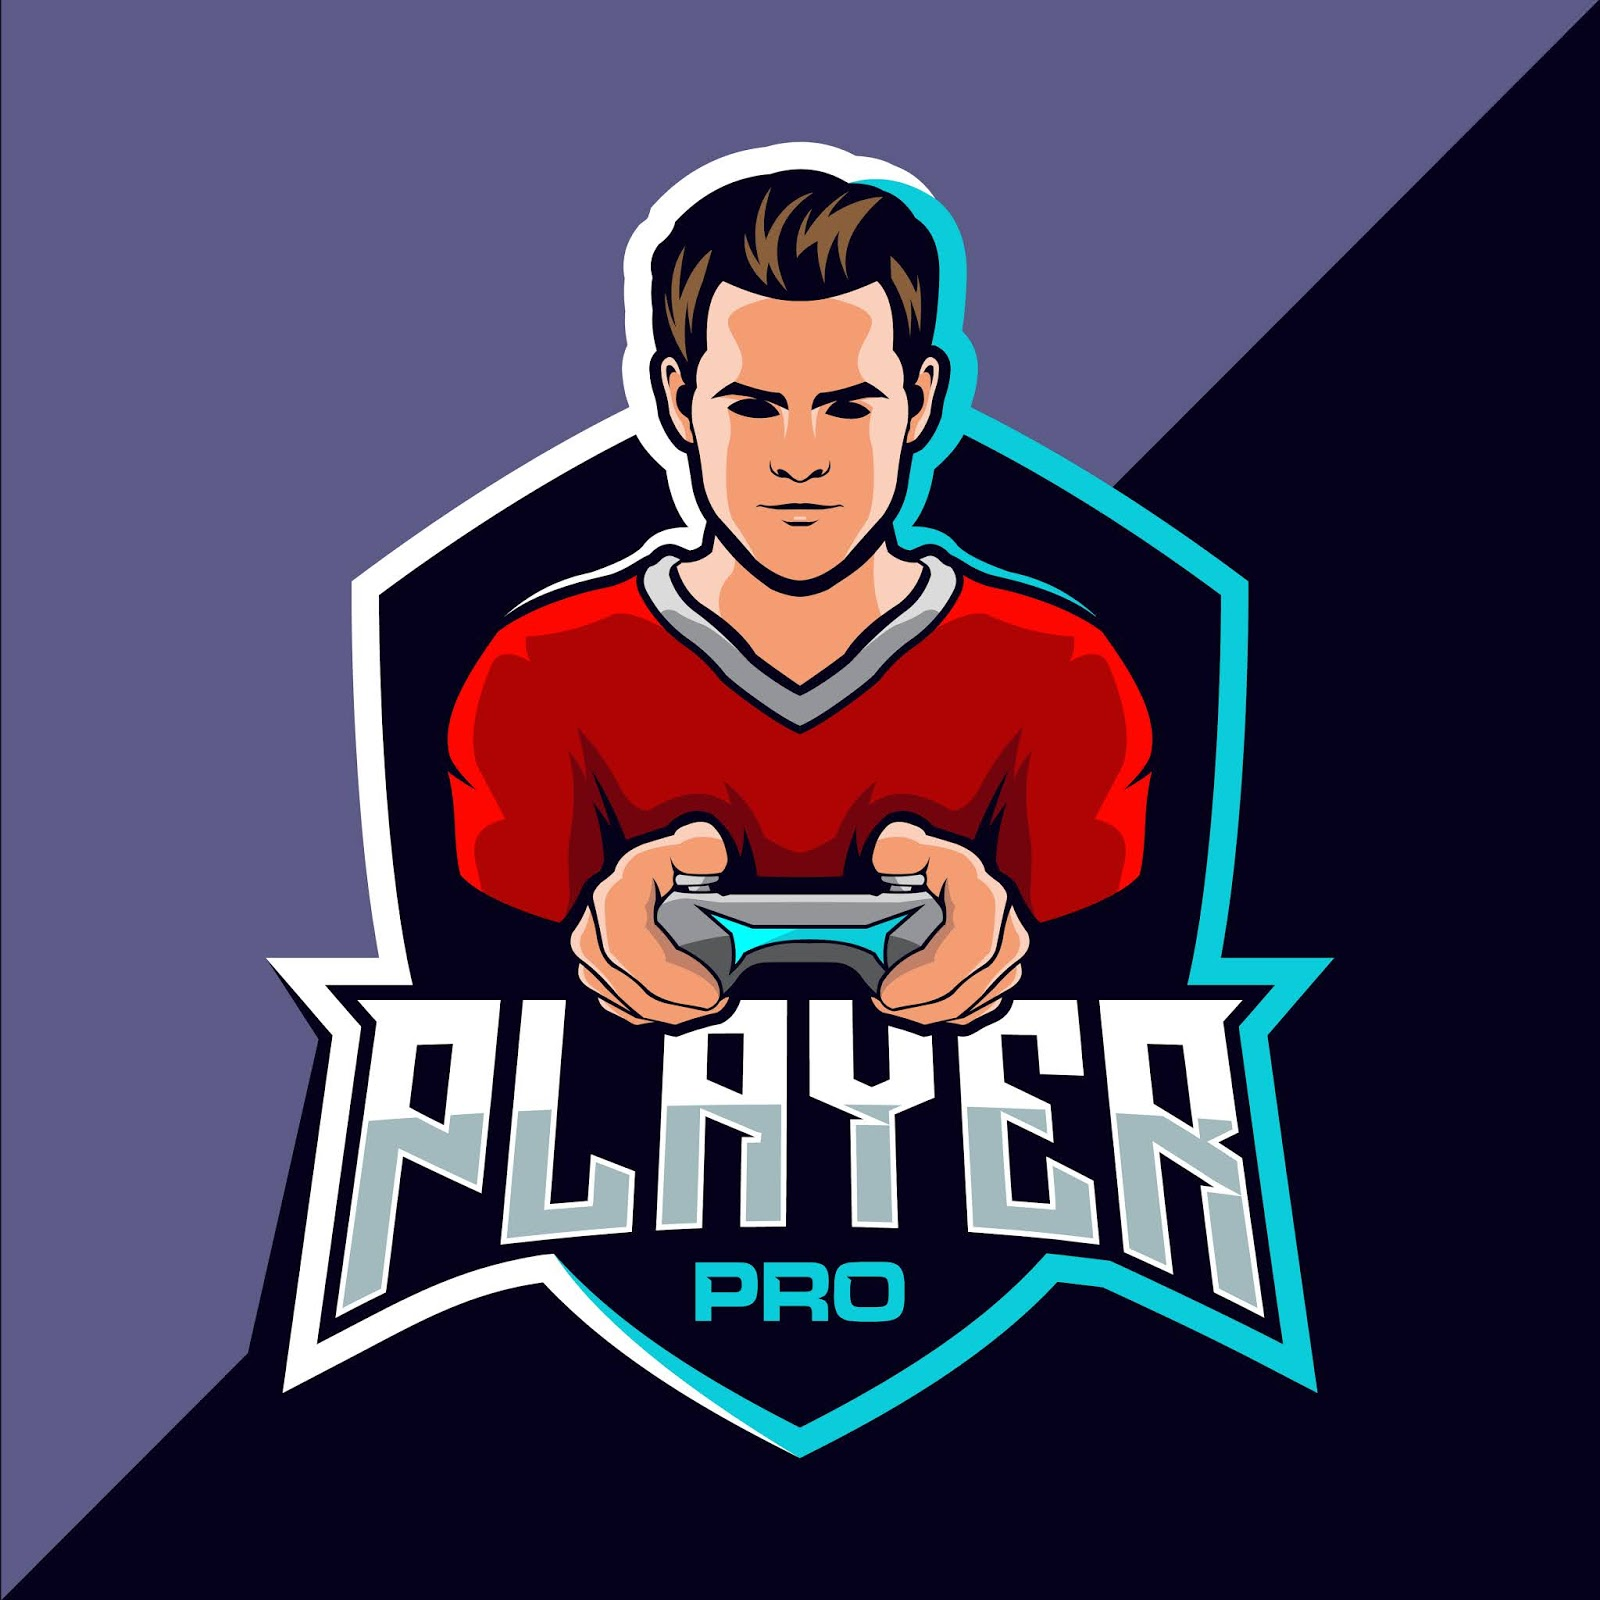 Pro Player Esport Game Logo Style Free Download Vector CDR, AI, EPS and PNG Formats